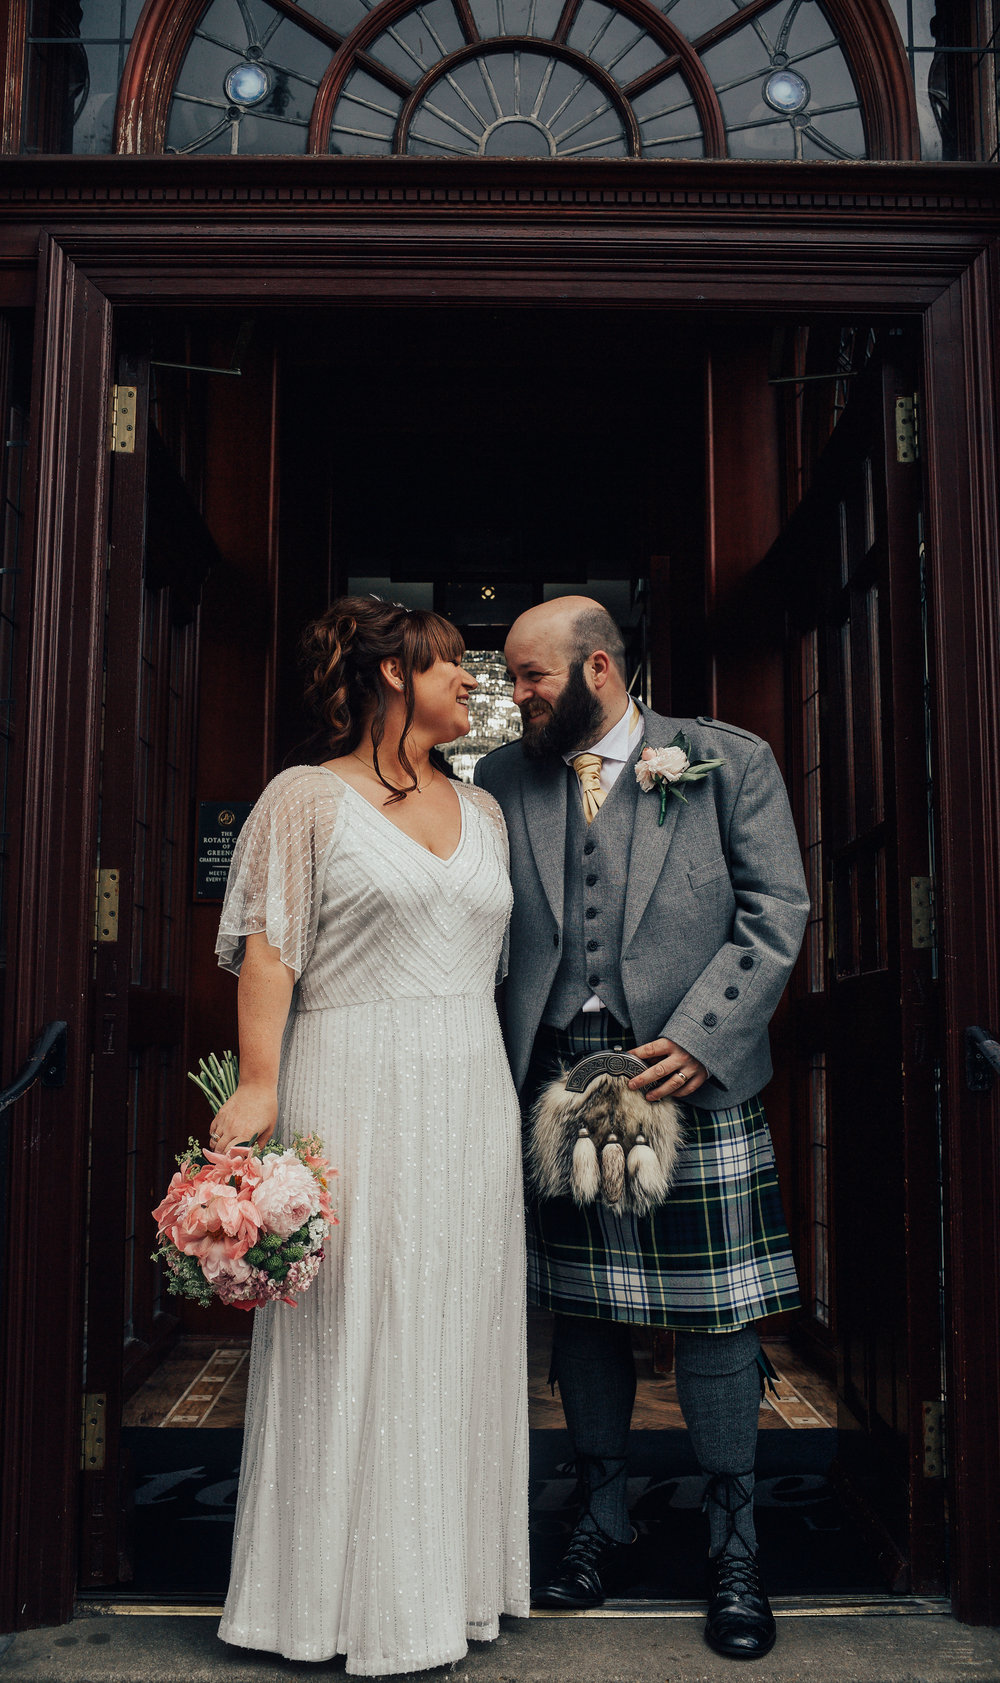 PJ_PHILLIPS_PHOTOGRAPHY_ERIKA_&_BRUCE_ALTERNATIVE_GLASGOW_CITY_WEDDING_79.jpg